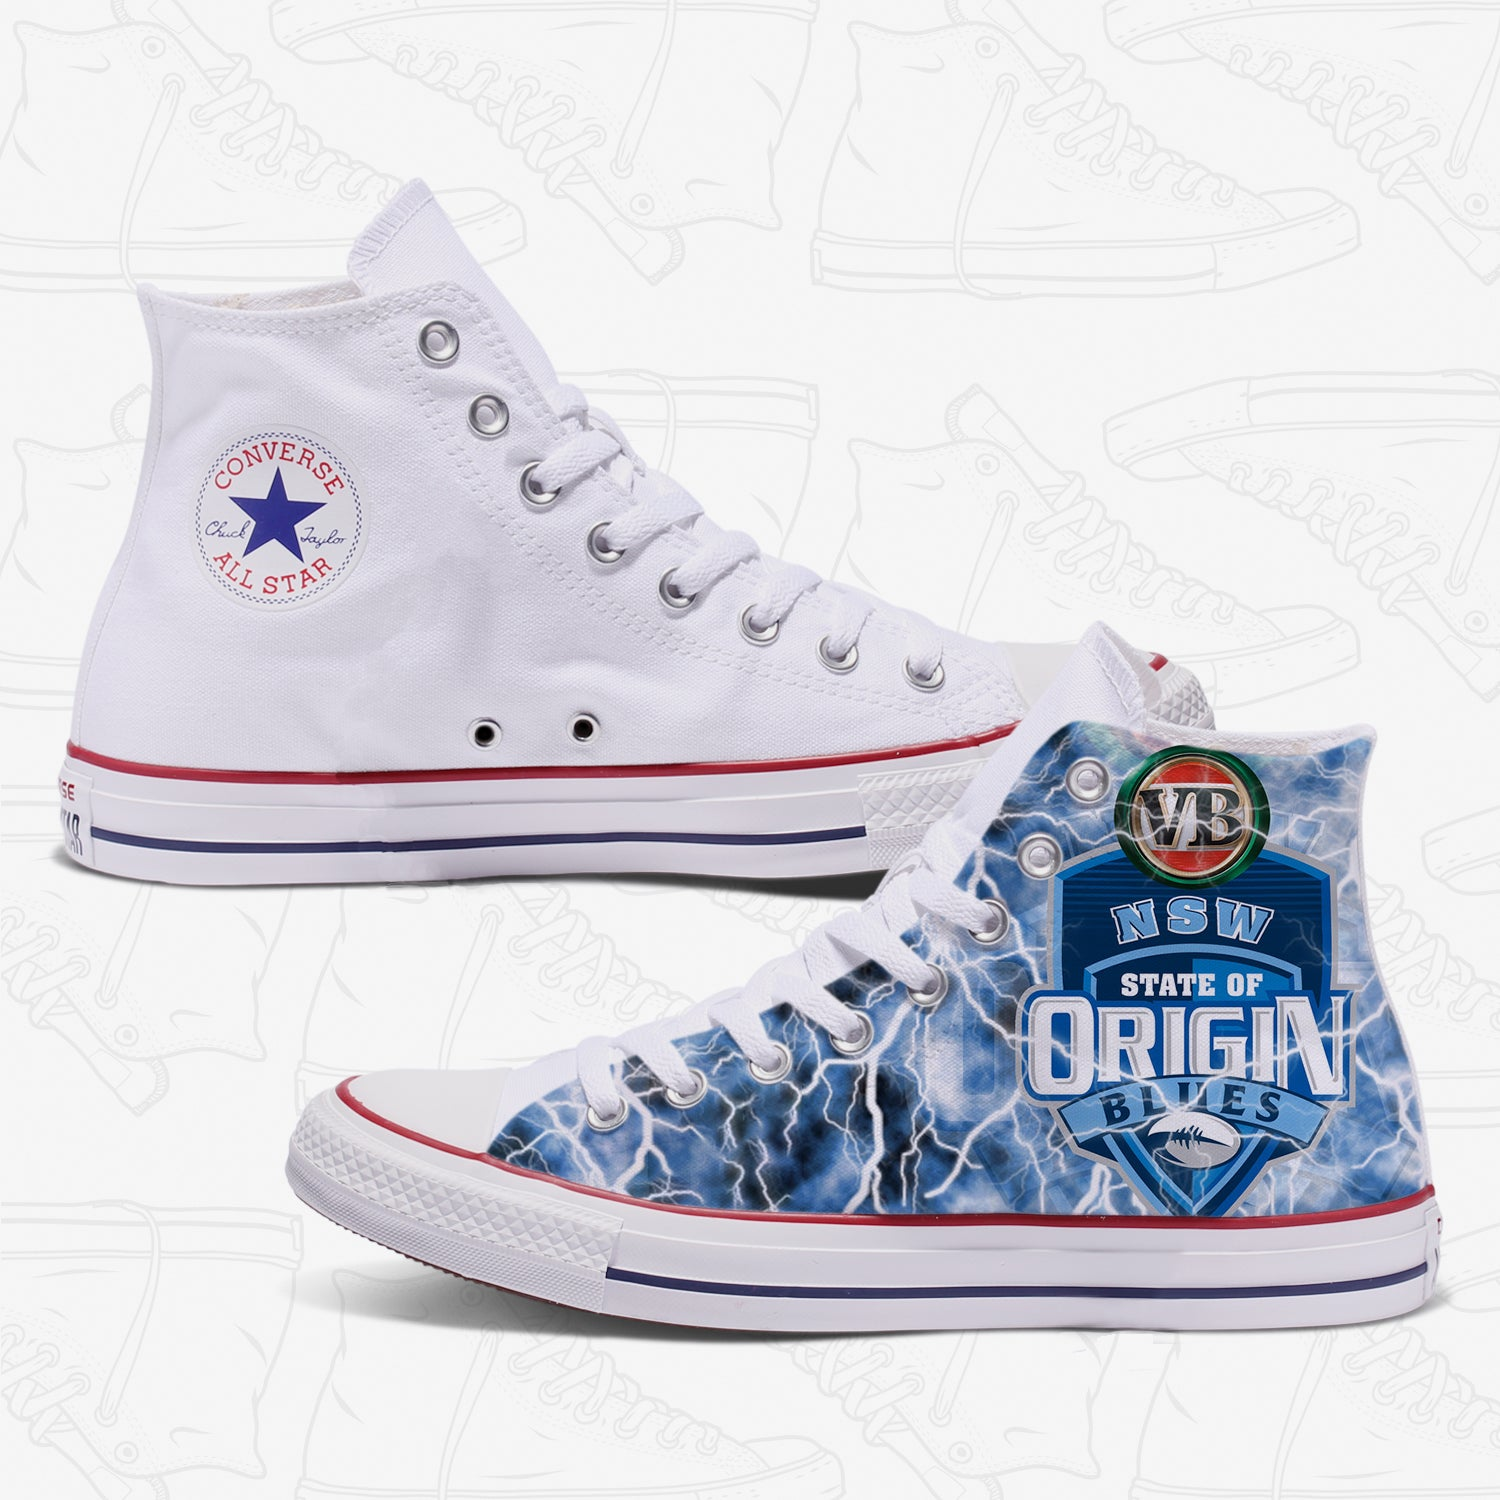 NSW State of Origin Adult Converse Shoes